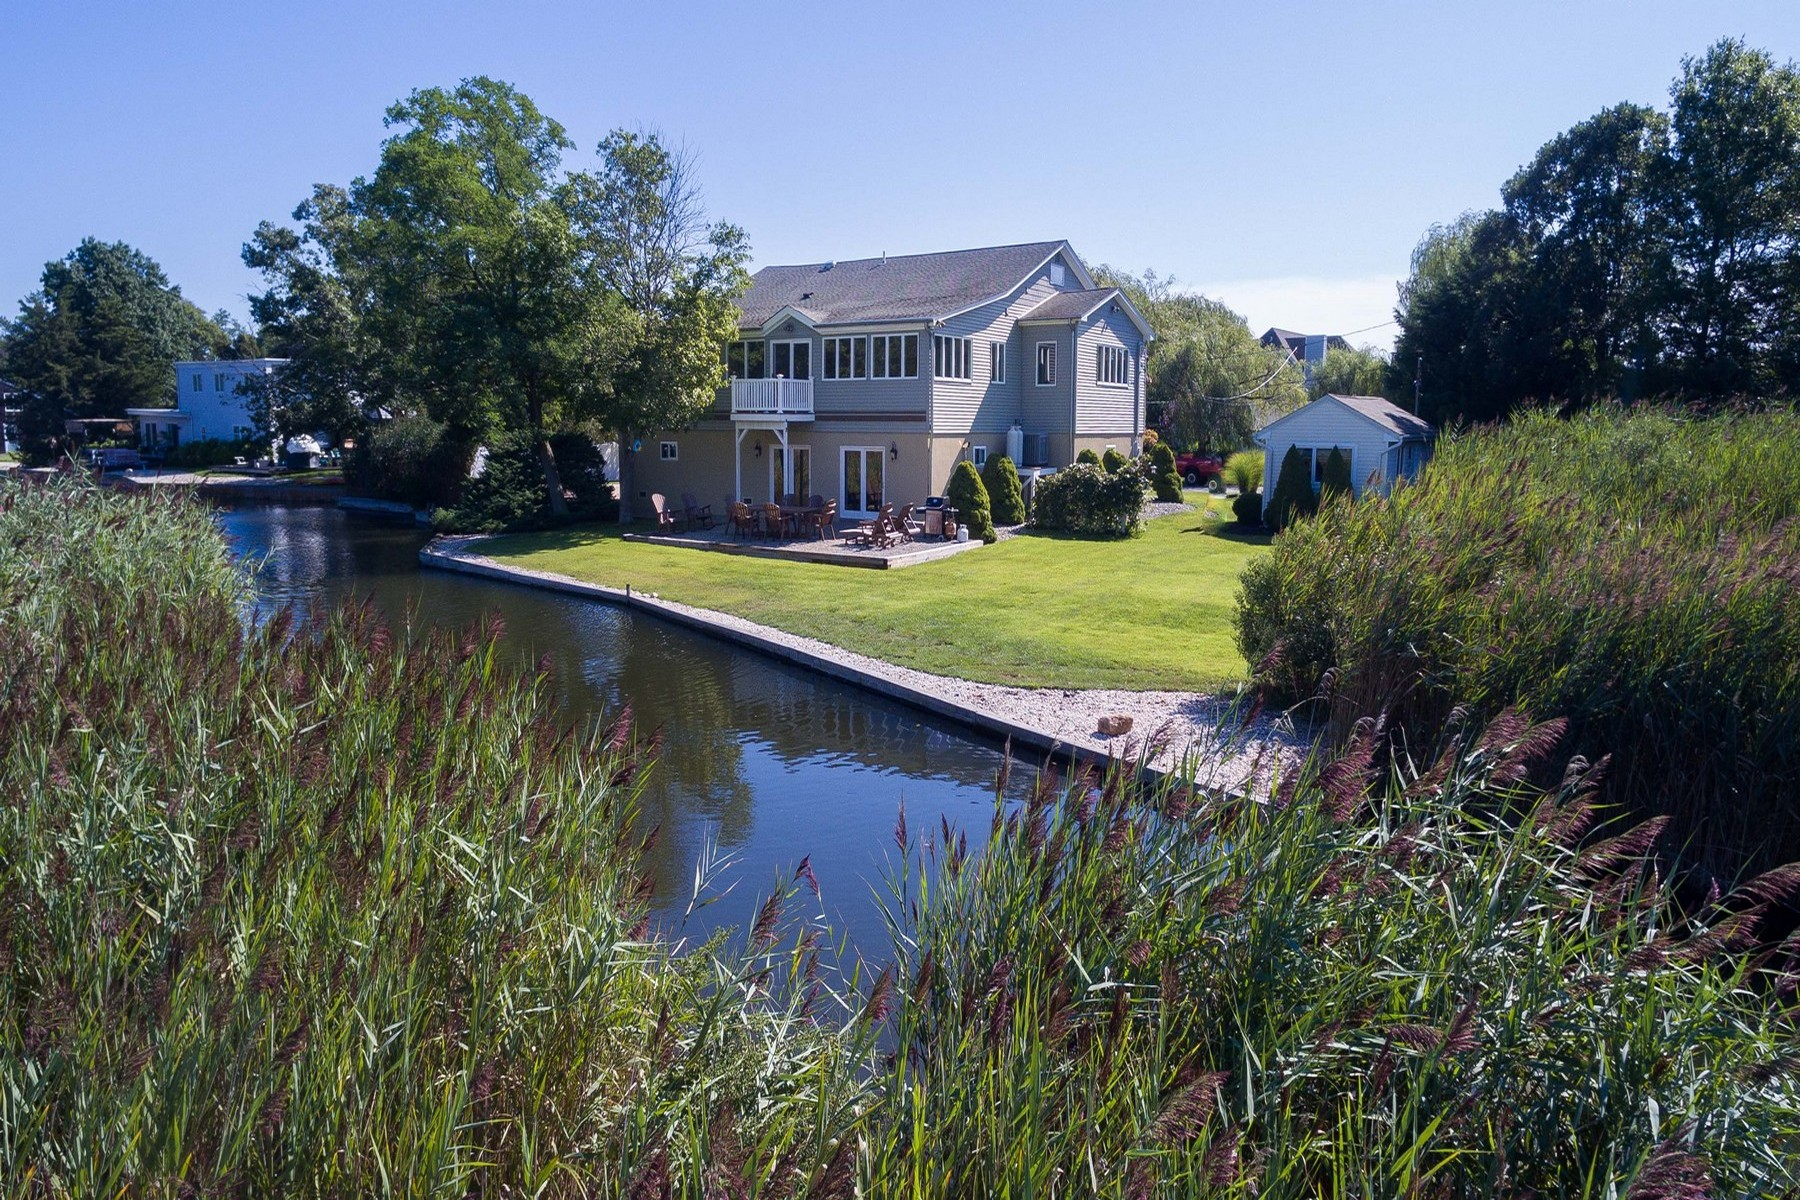 Single Family Homes for Active at Quogue 9 Bluejay Way East Quogue, New York 11942 United States